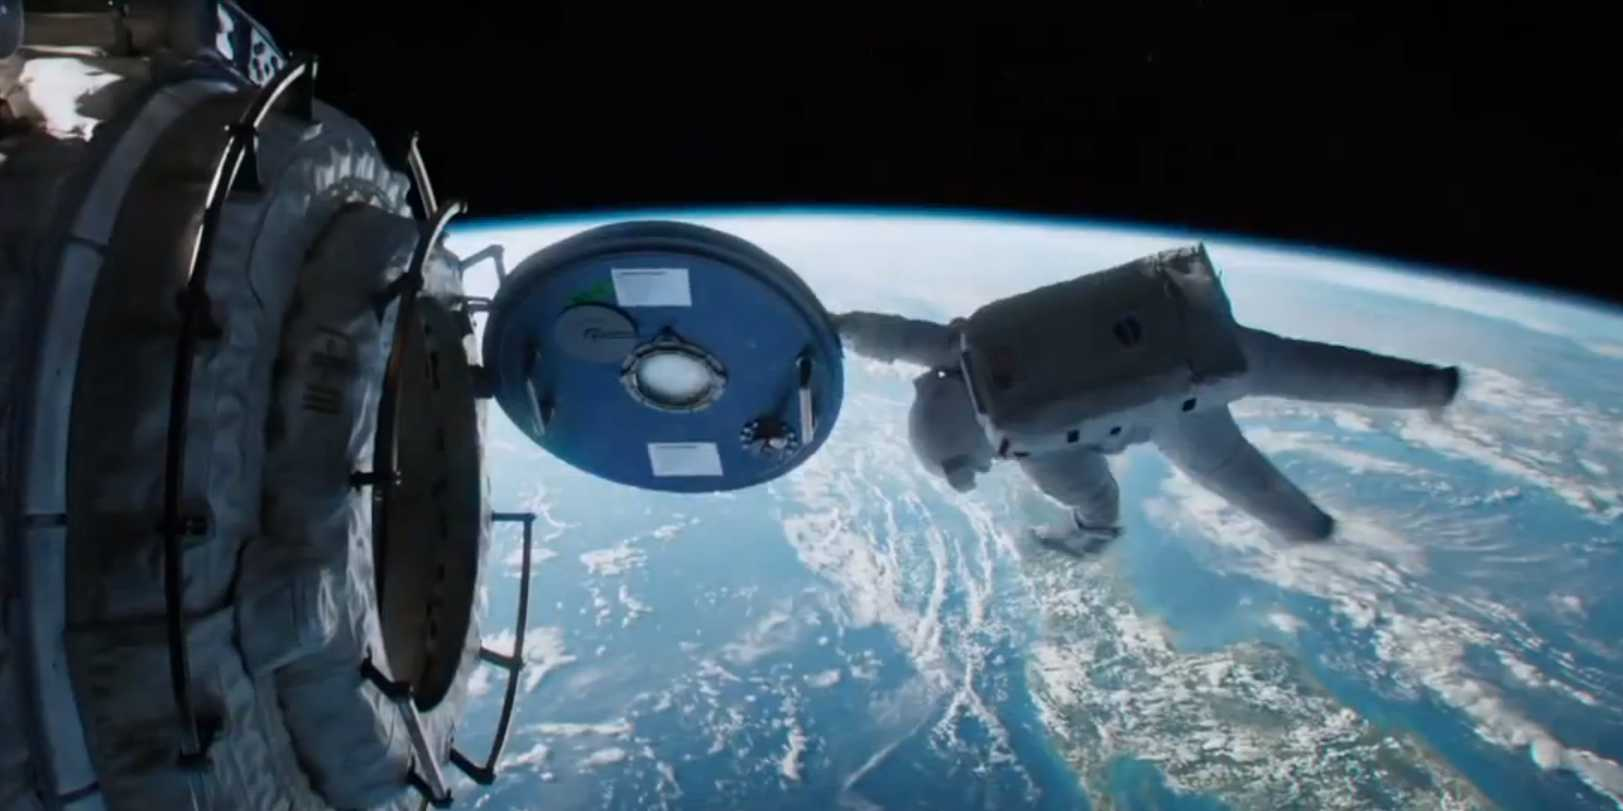 Gravity (2013) Directed by Alfonso Cuaron - Movie Review - Image 6